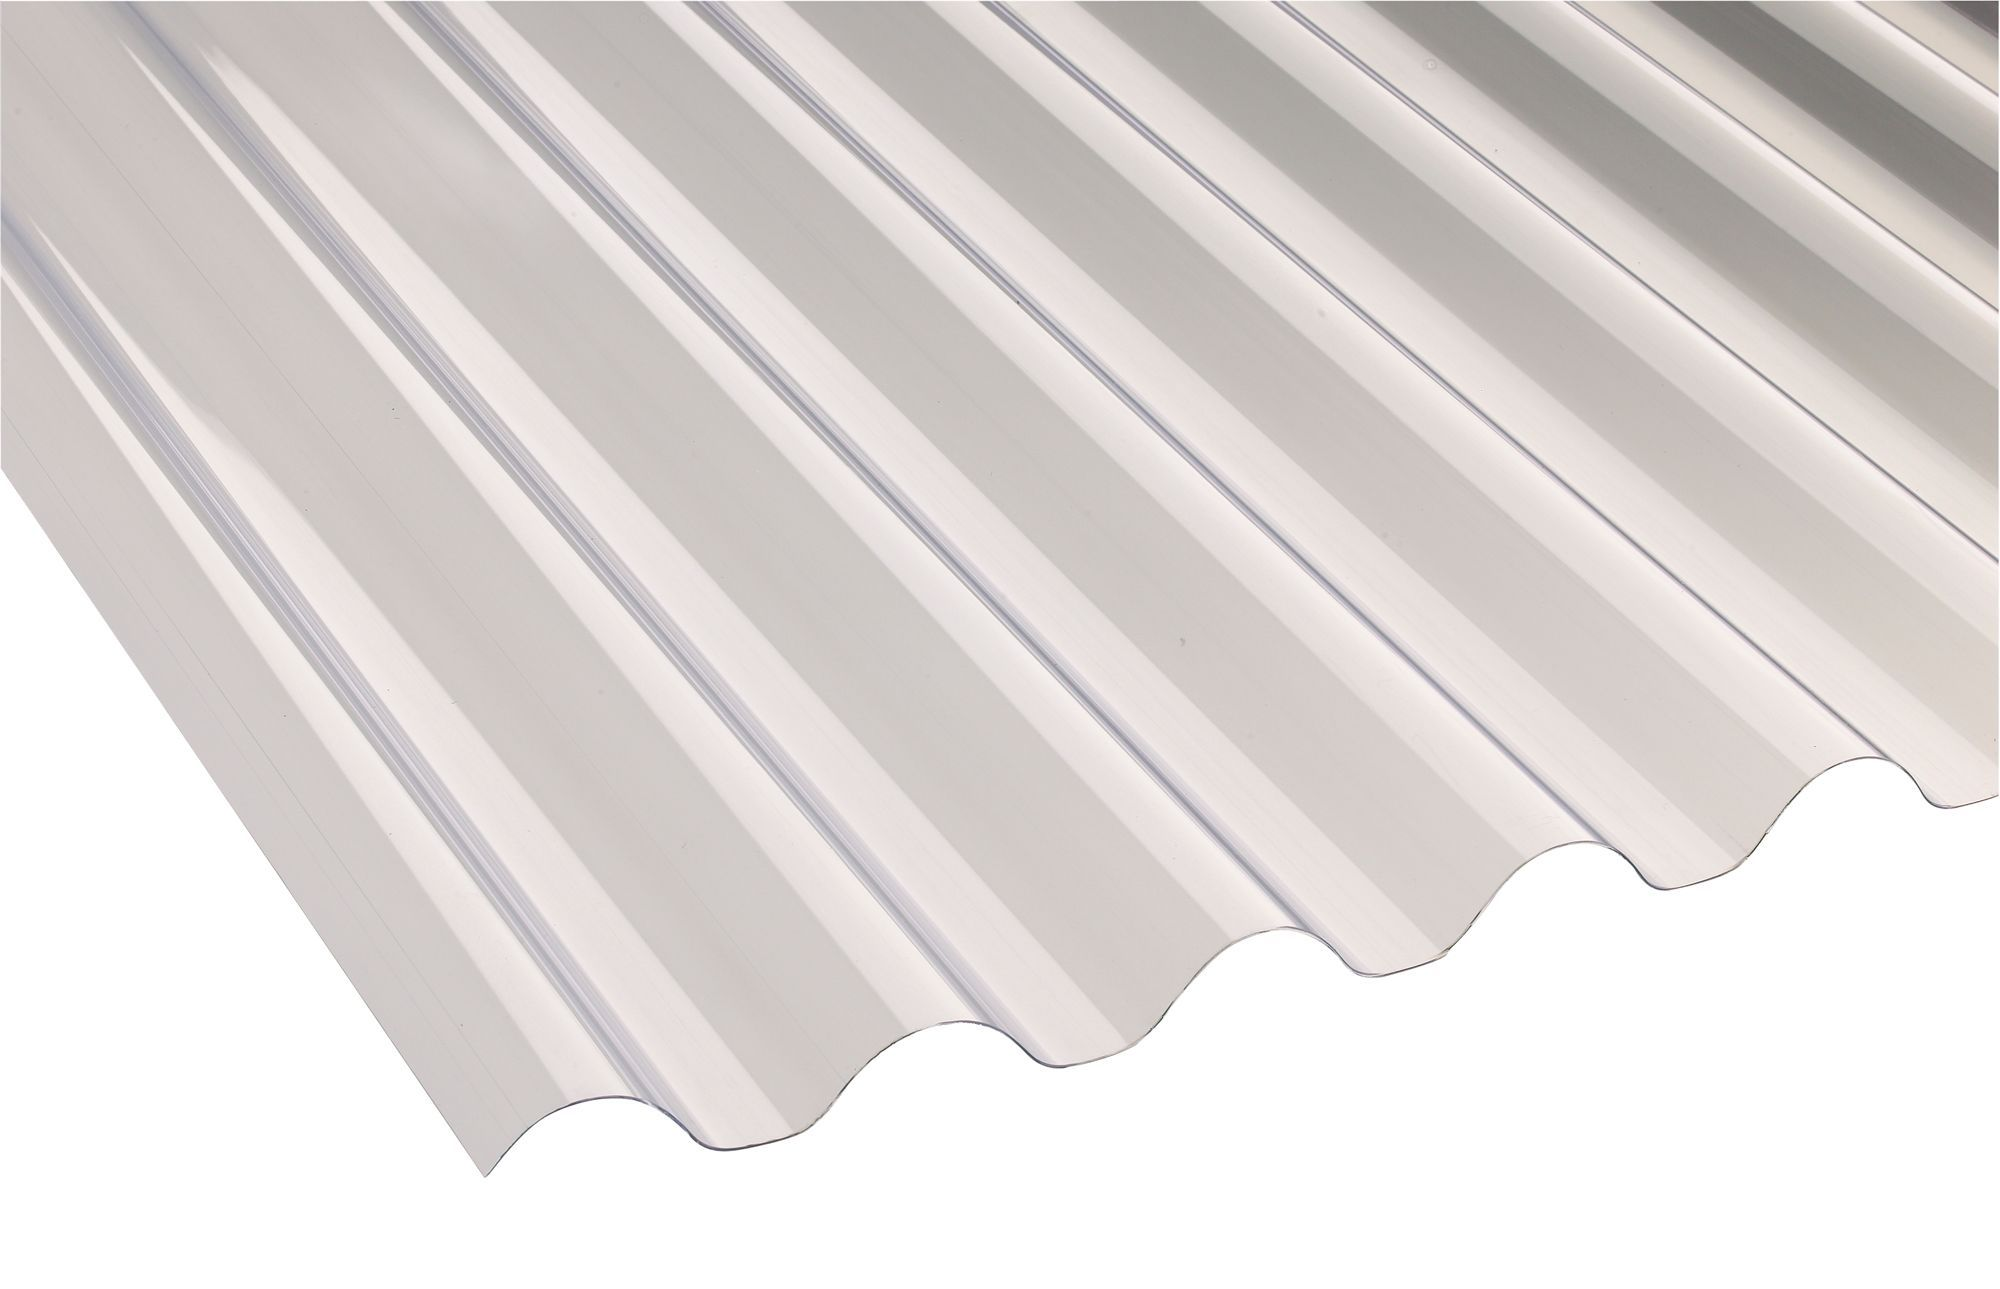 Translucent Pvc Roofing Sheet 1 8m X 660mm Departments Diy At B Q ...